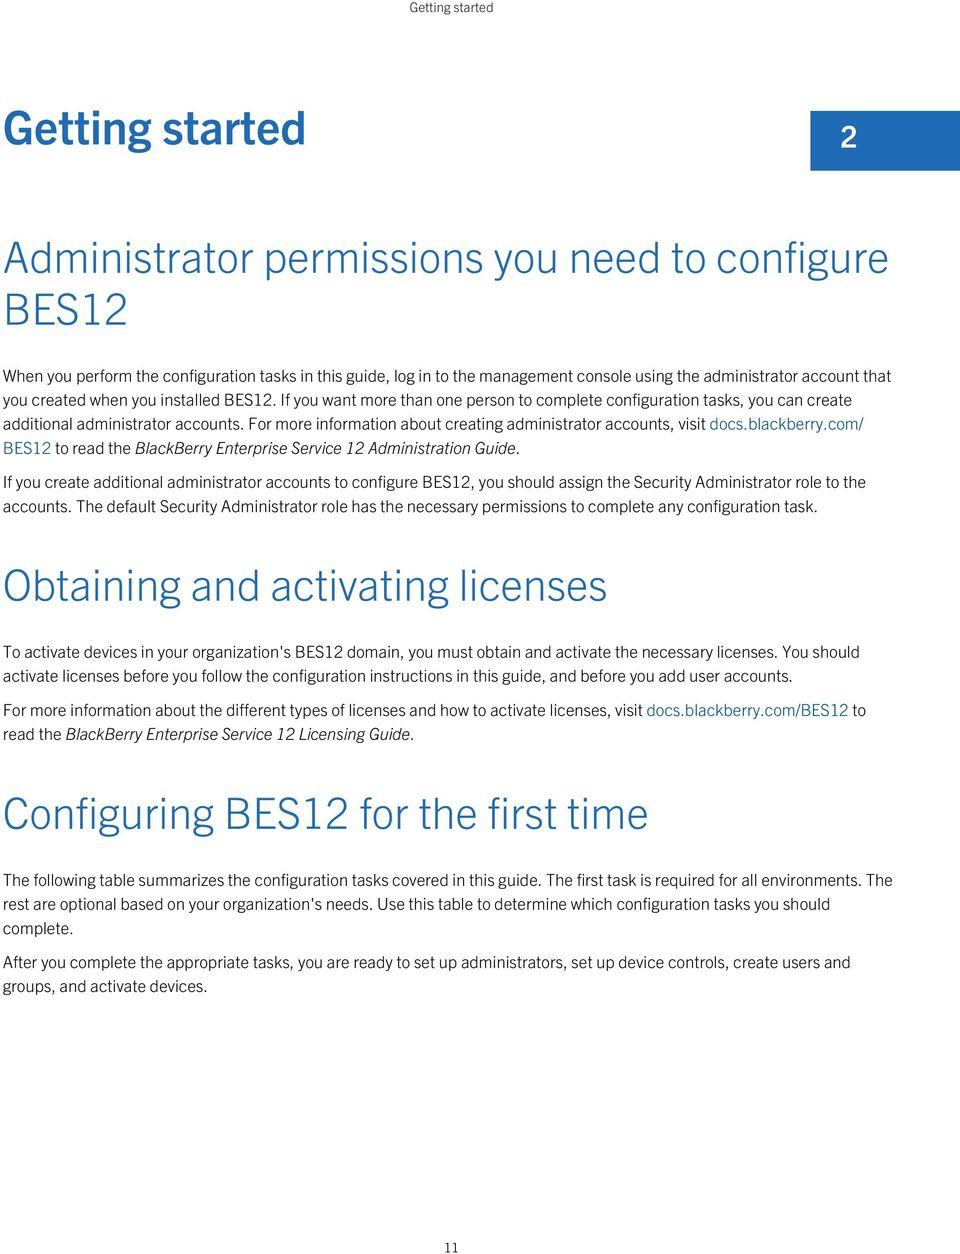 For more information about creating administrator accounts, visit docs.blackberry.com/ BES12 to read the BlackBerry Enterprise Service 12 Administration Guide.